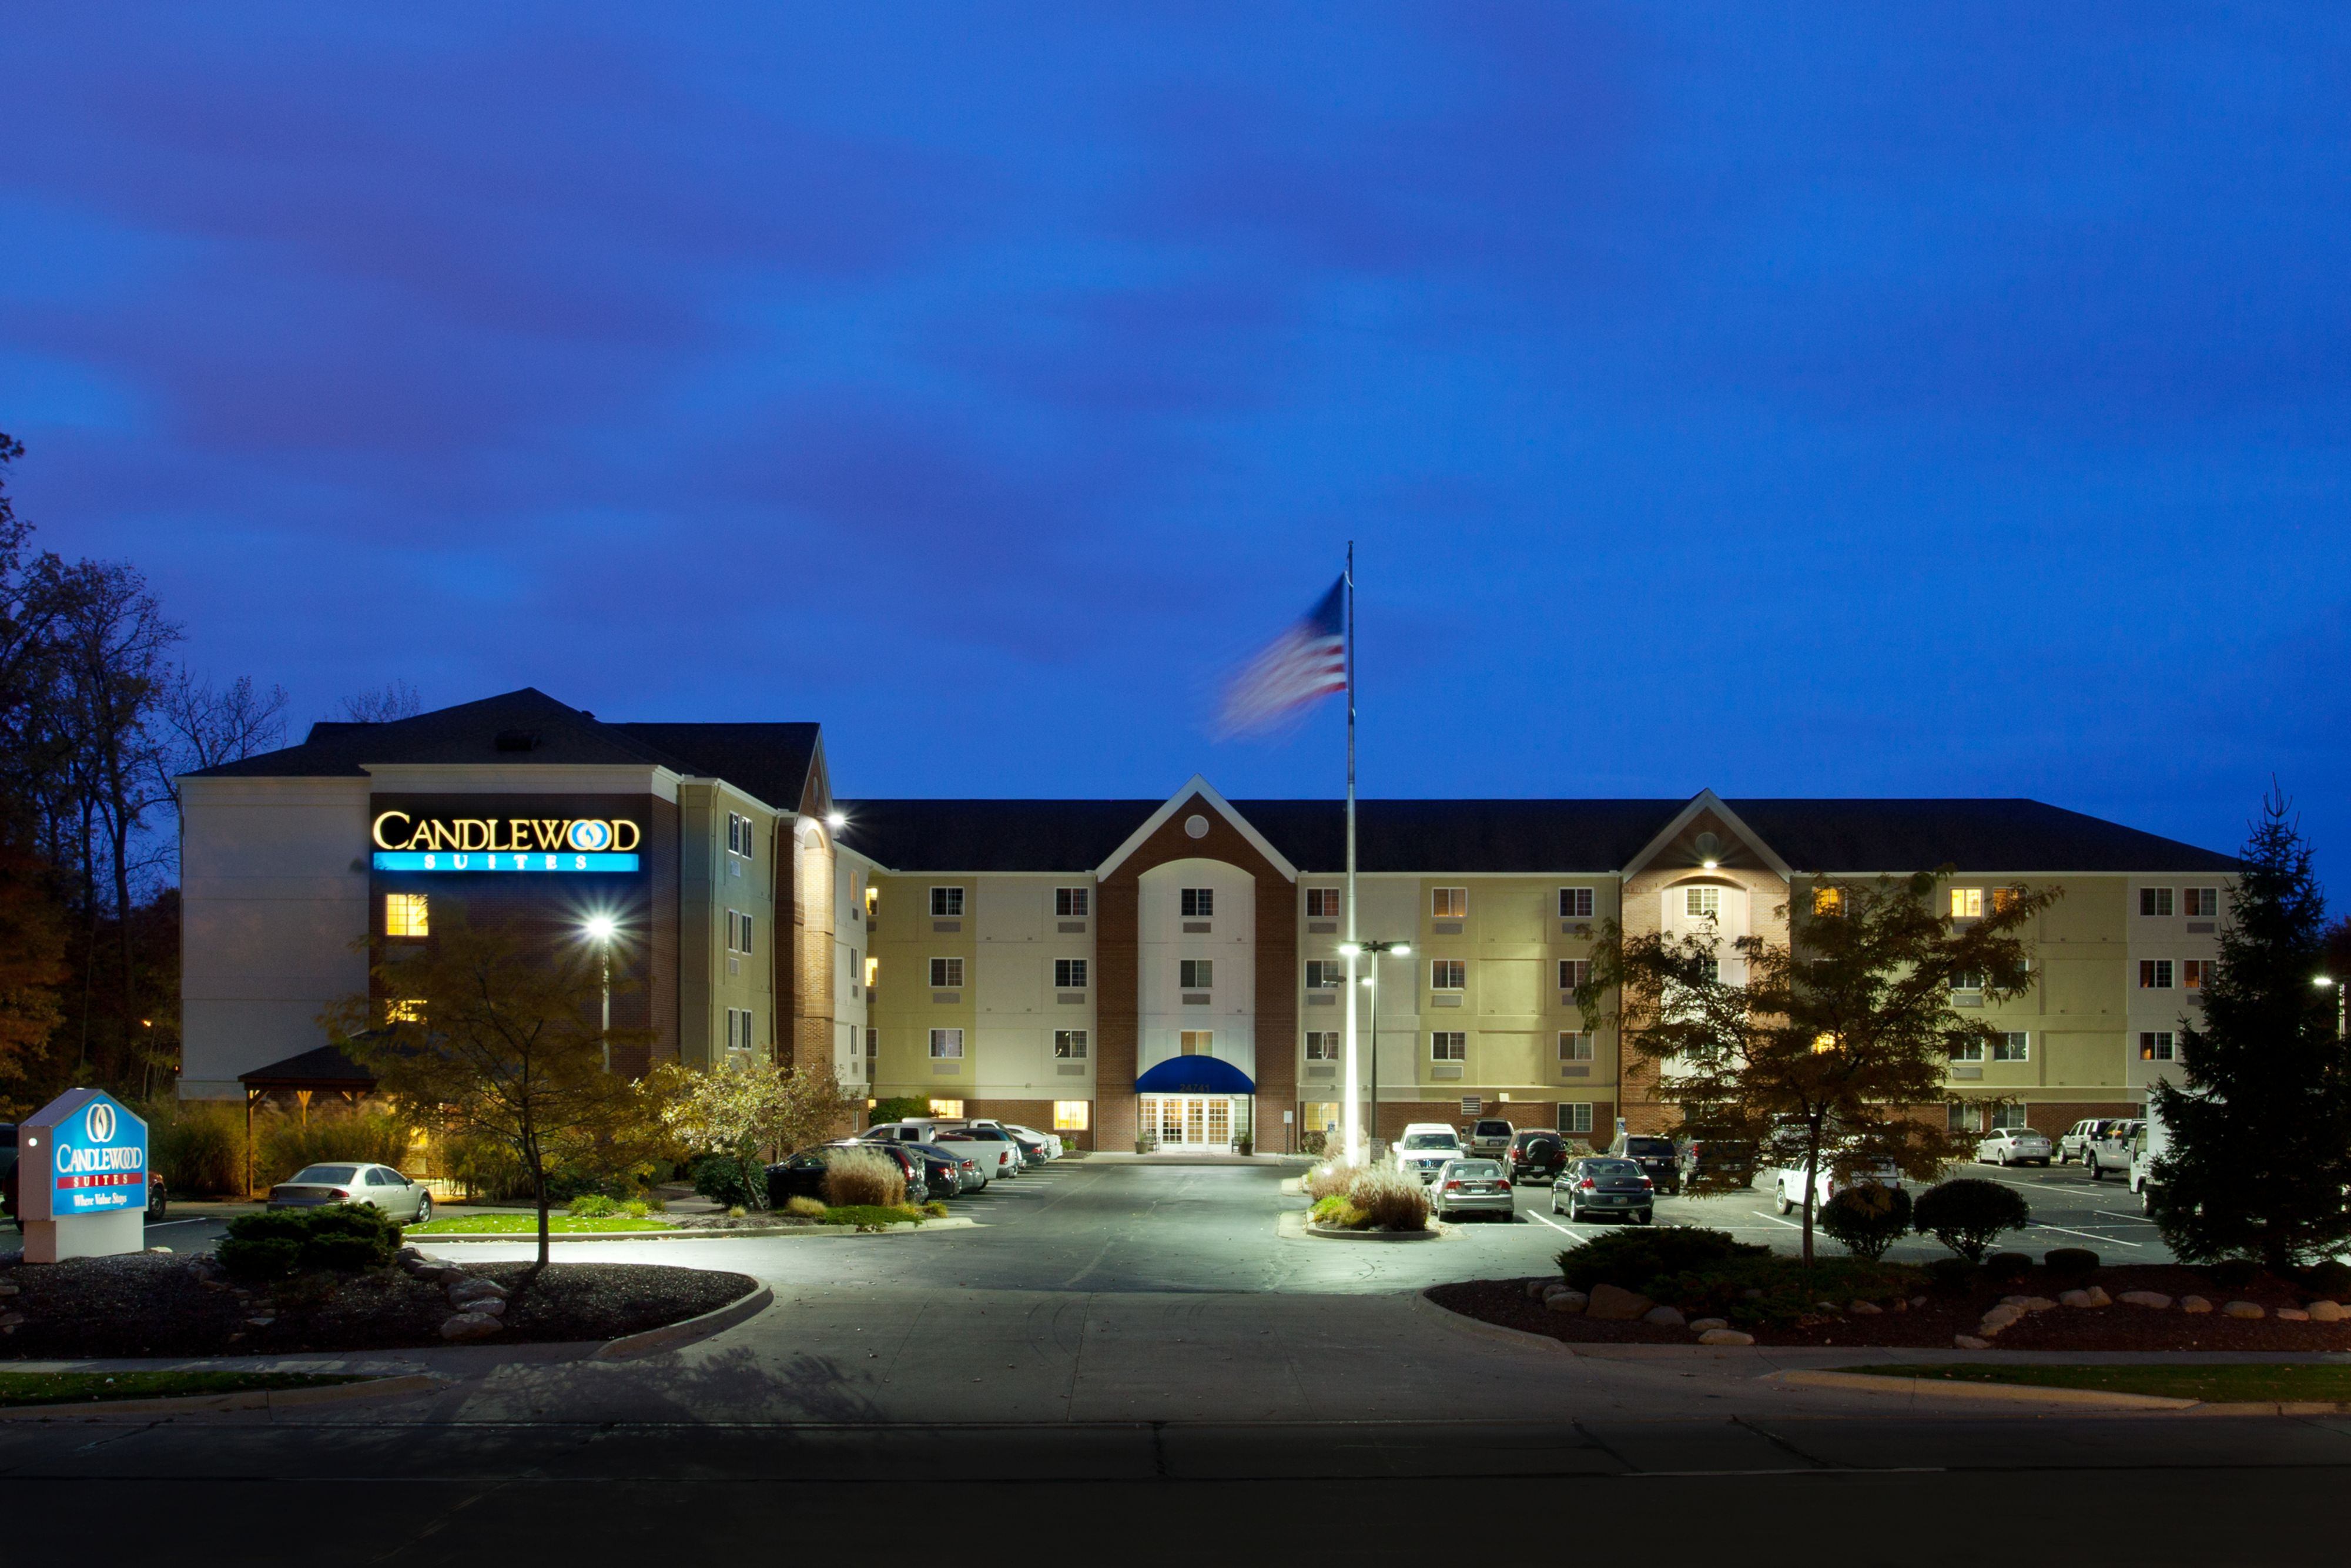 Candlewood Suites Chicago/Naperville image 5